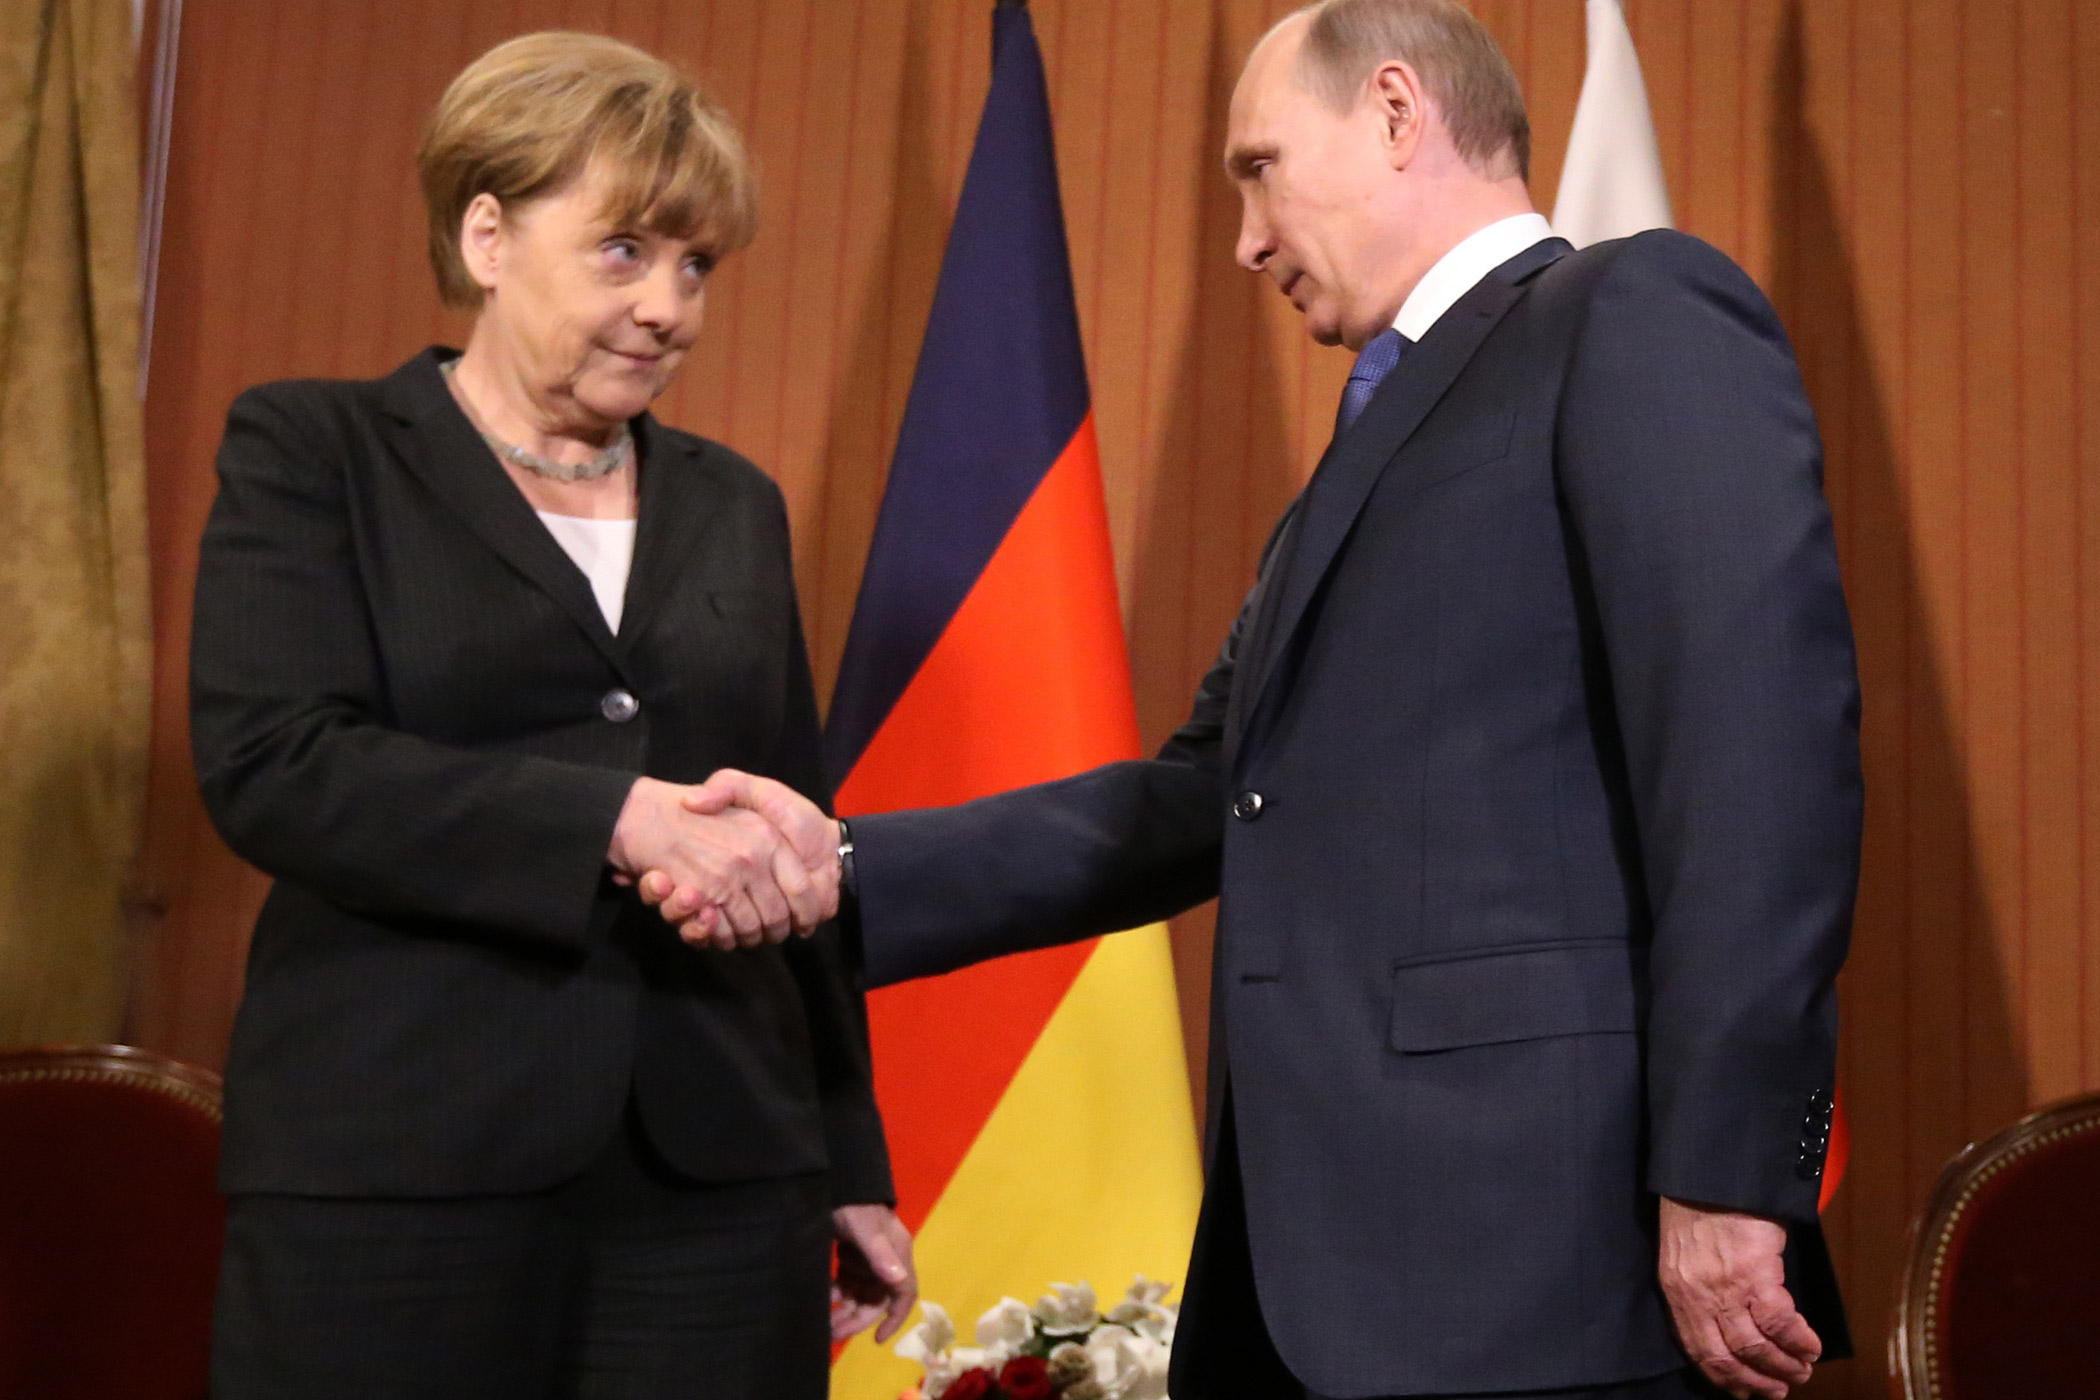 Russian President Vladimir Putin shakes hands with German Chancellor Angela Merkel of Germany during D-Day anniversary celebrations on June 6, 2014 in Deauville, France.